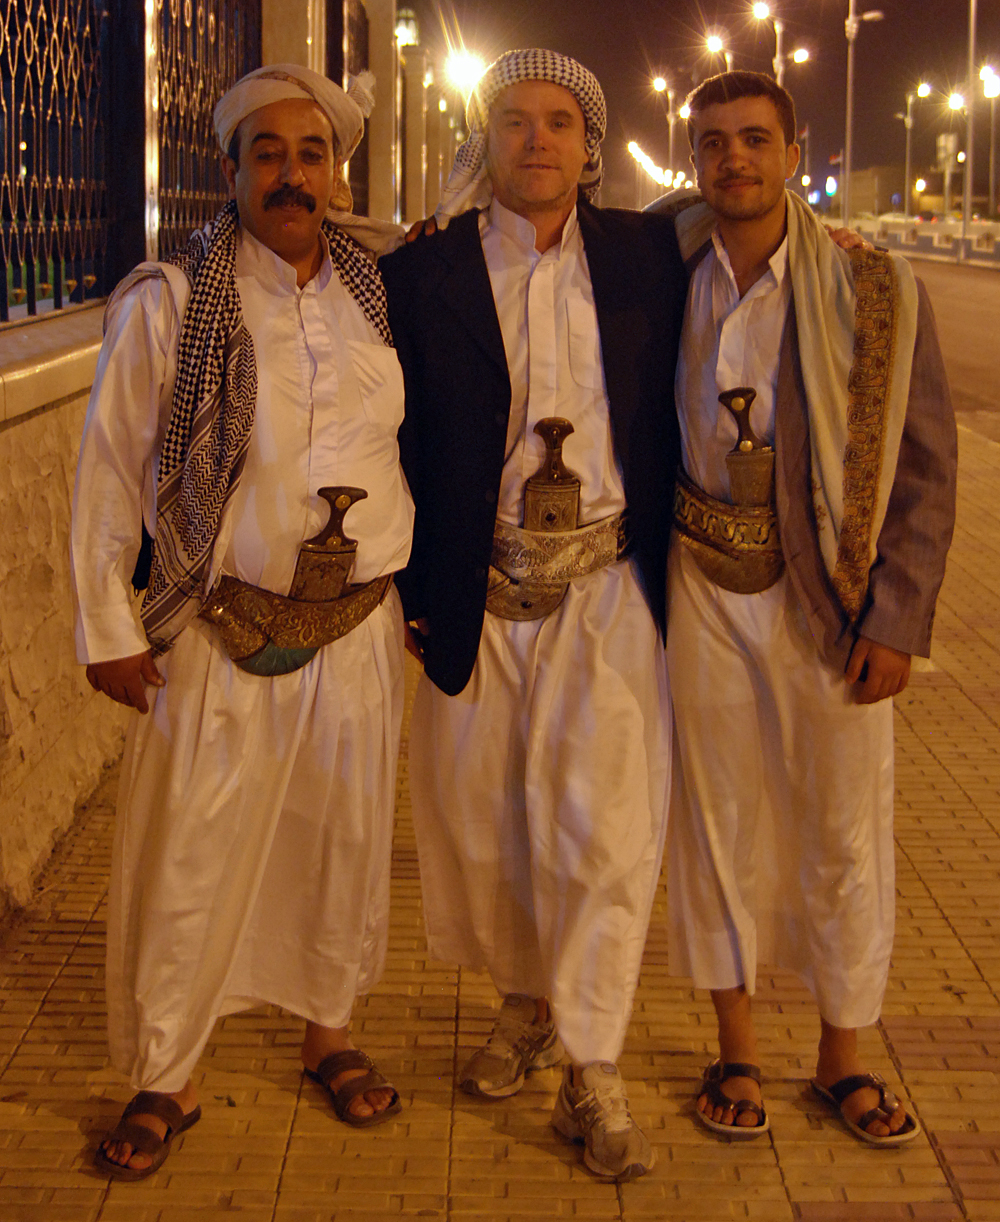 Hussein, Ahmed Al-Hamdani and Mohammed outside the presidents mosque...